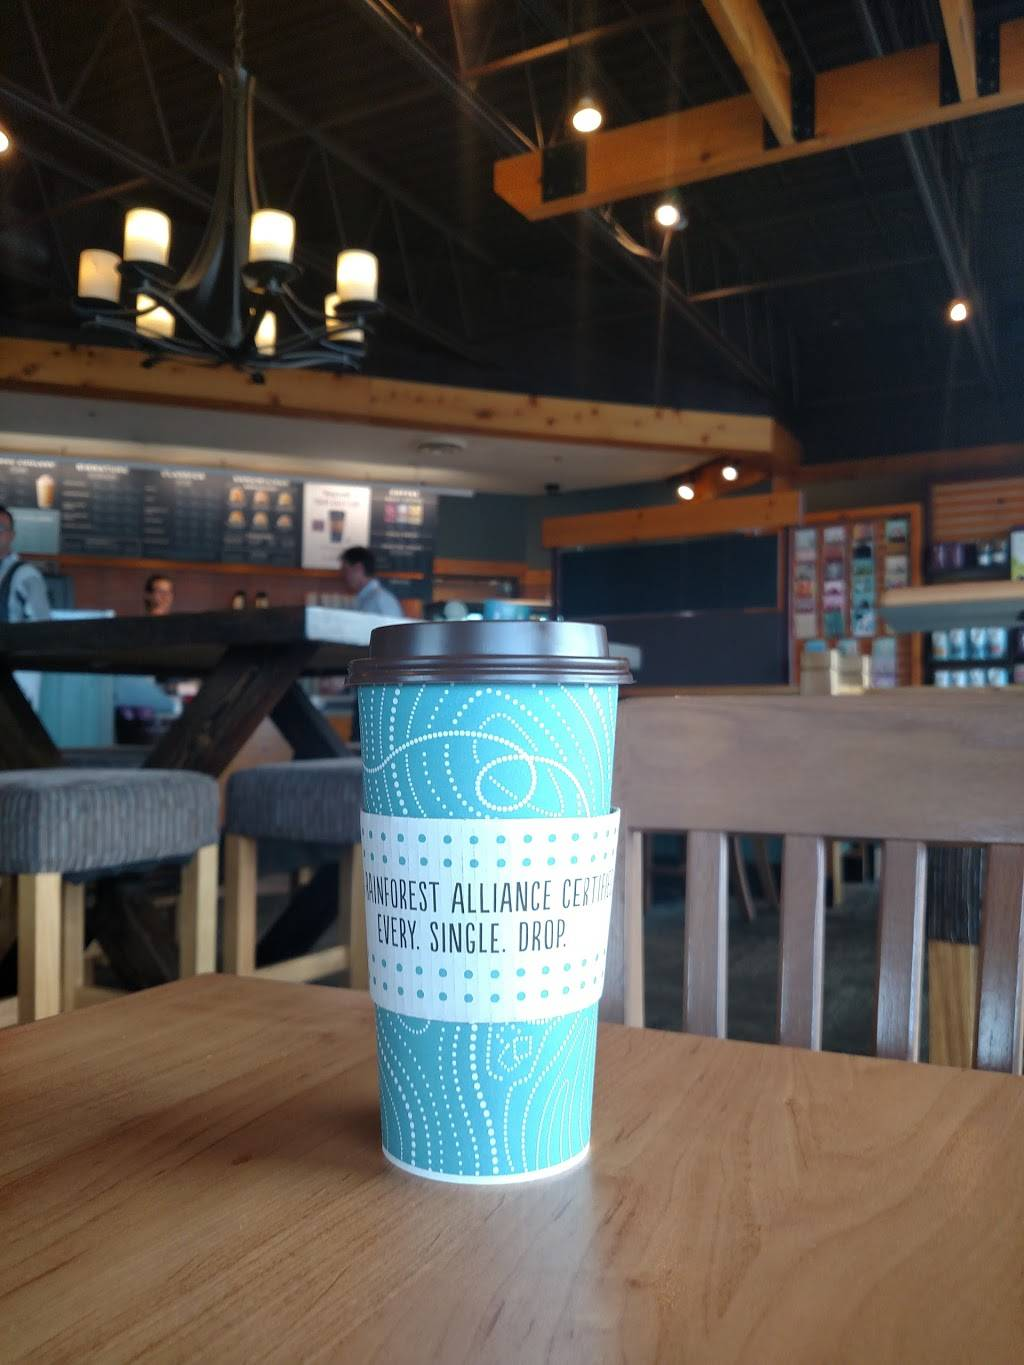 Caribou Coffee - cafe  | Photo 8 of 9 | Address: 9420 N 36th Ave, New Hope, MN 55427, USA | Phone: (763) 546-1818